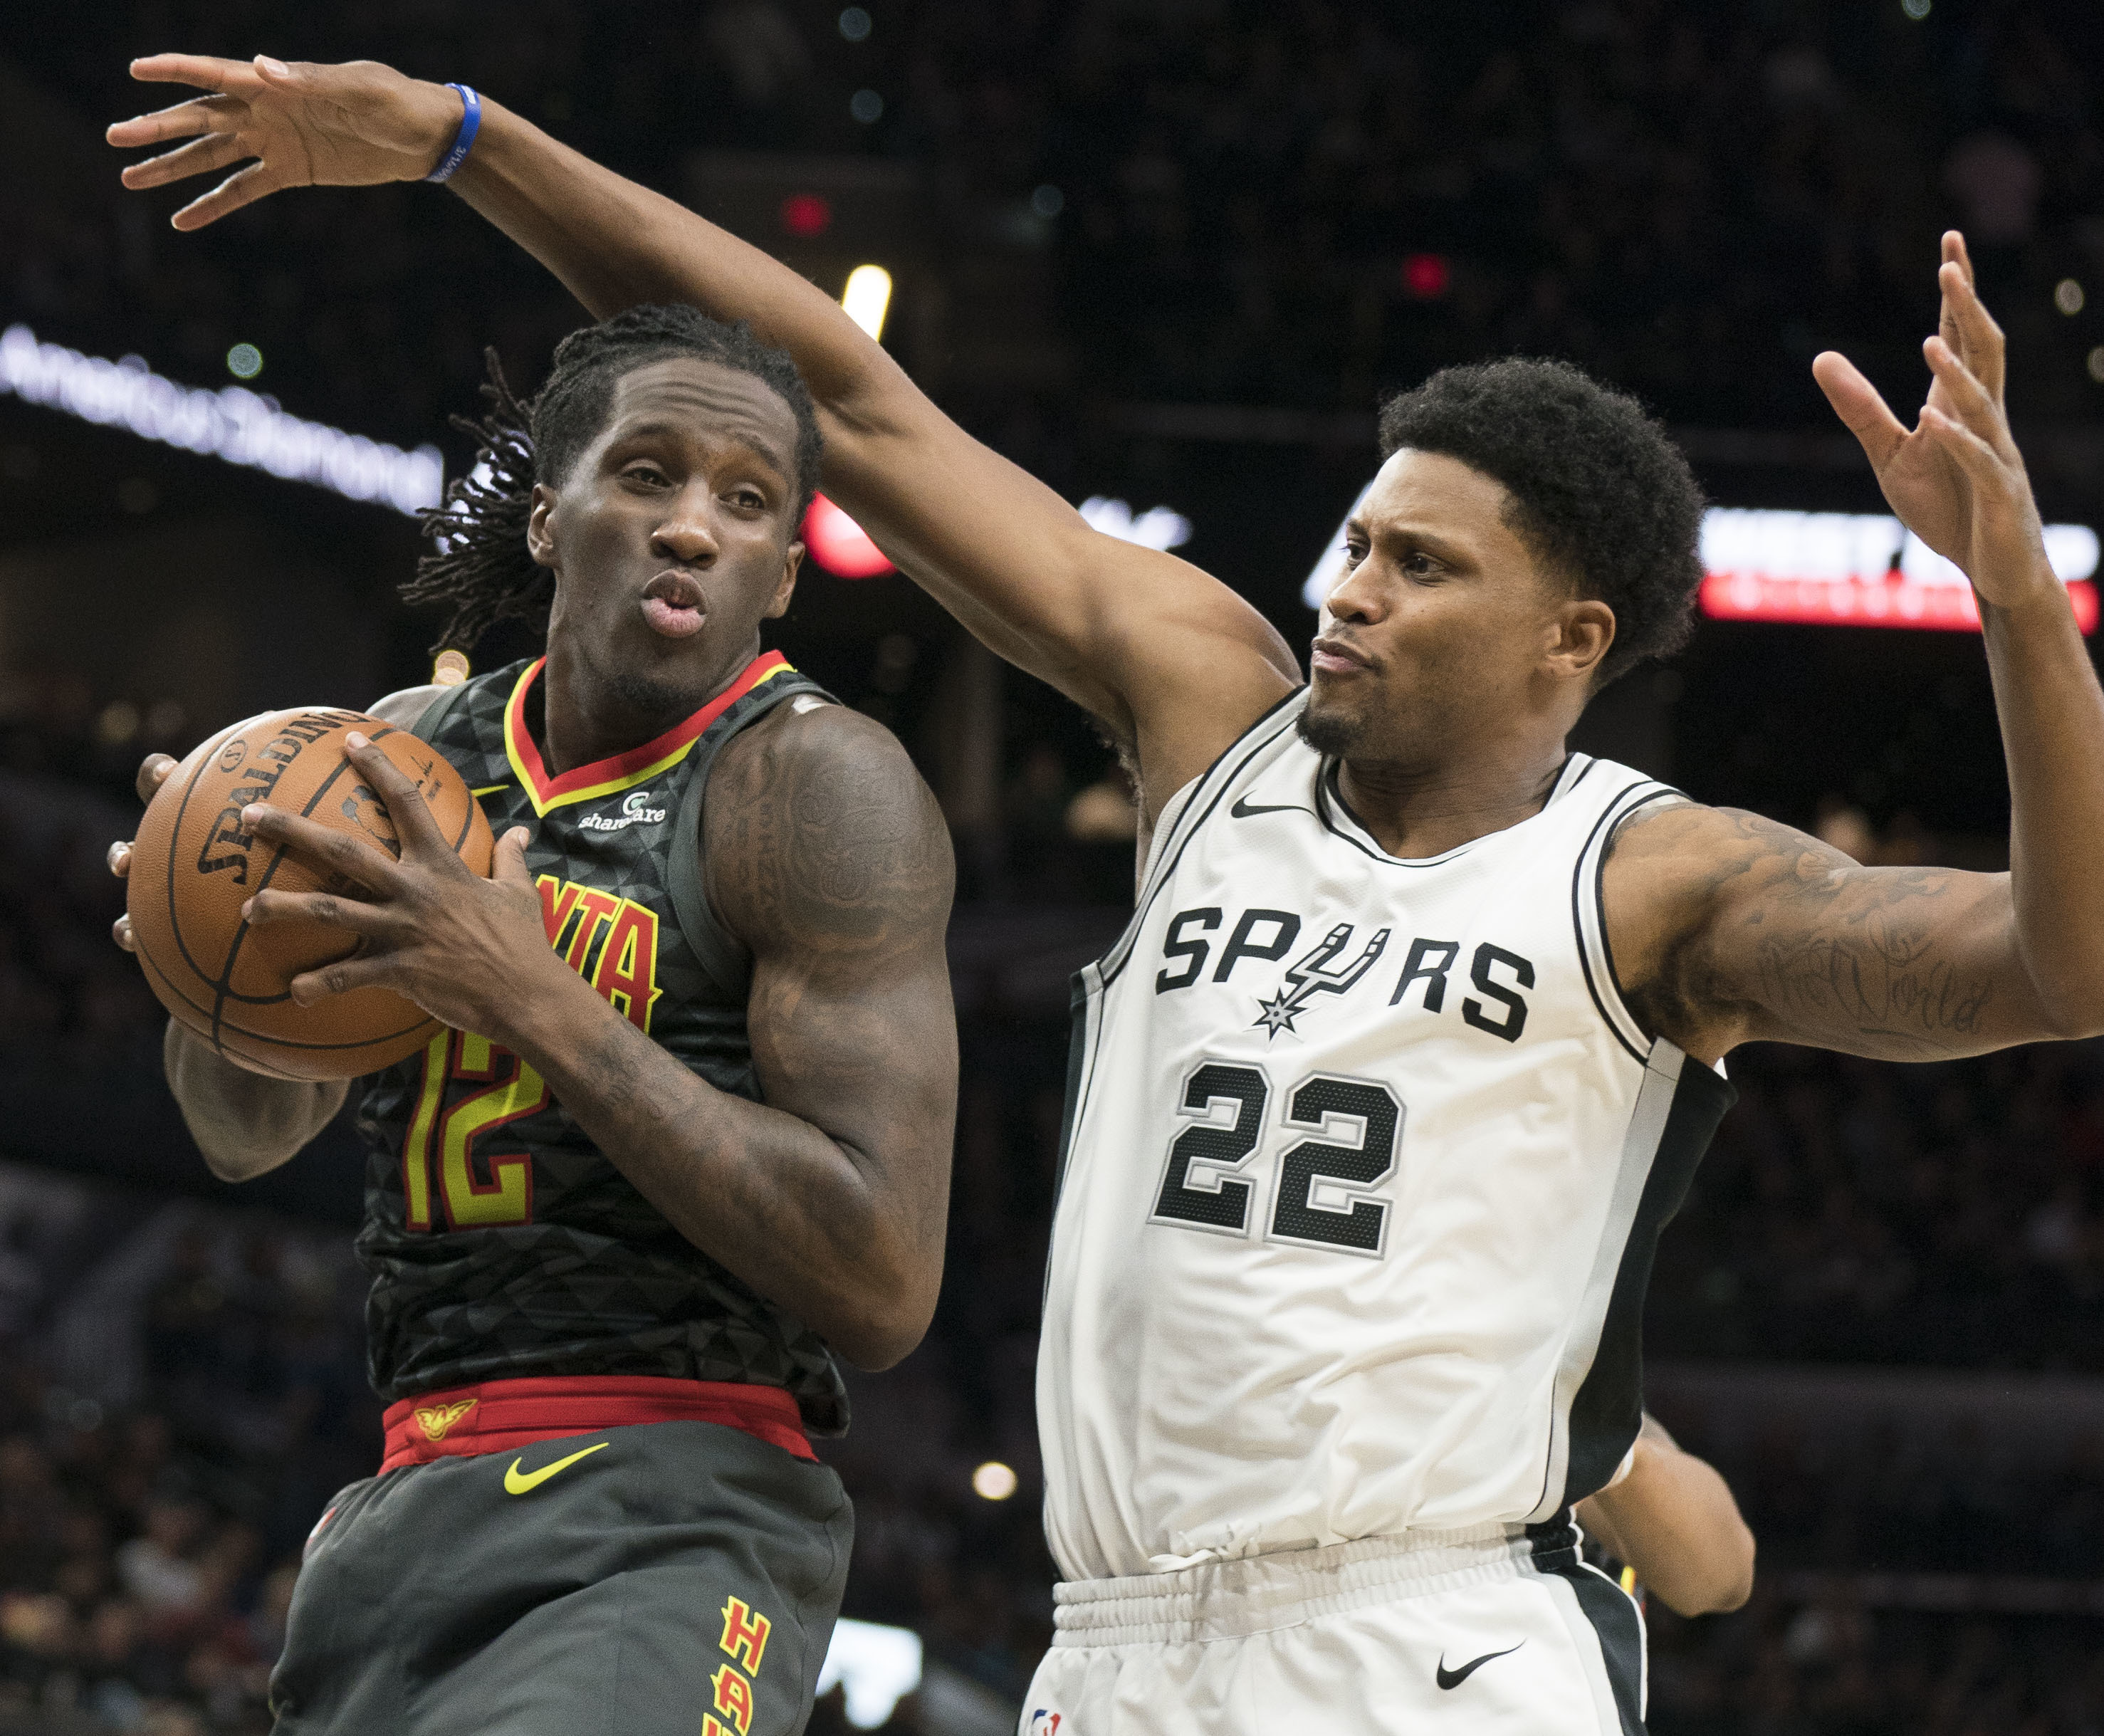 Atlanta Hawks forward Taurean Prince (12) looks to pass as he is guarded by San Antonio Spurs forward Rudy Gay during the first half of an NBA basketball game, Monday, Nov. 20, 2017, in San Antonio. (AP Photo/Darren Abate)